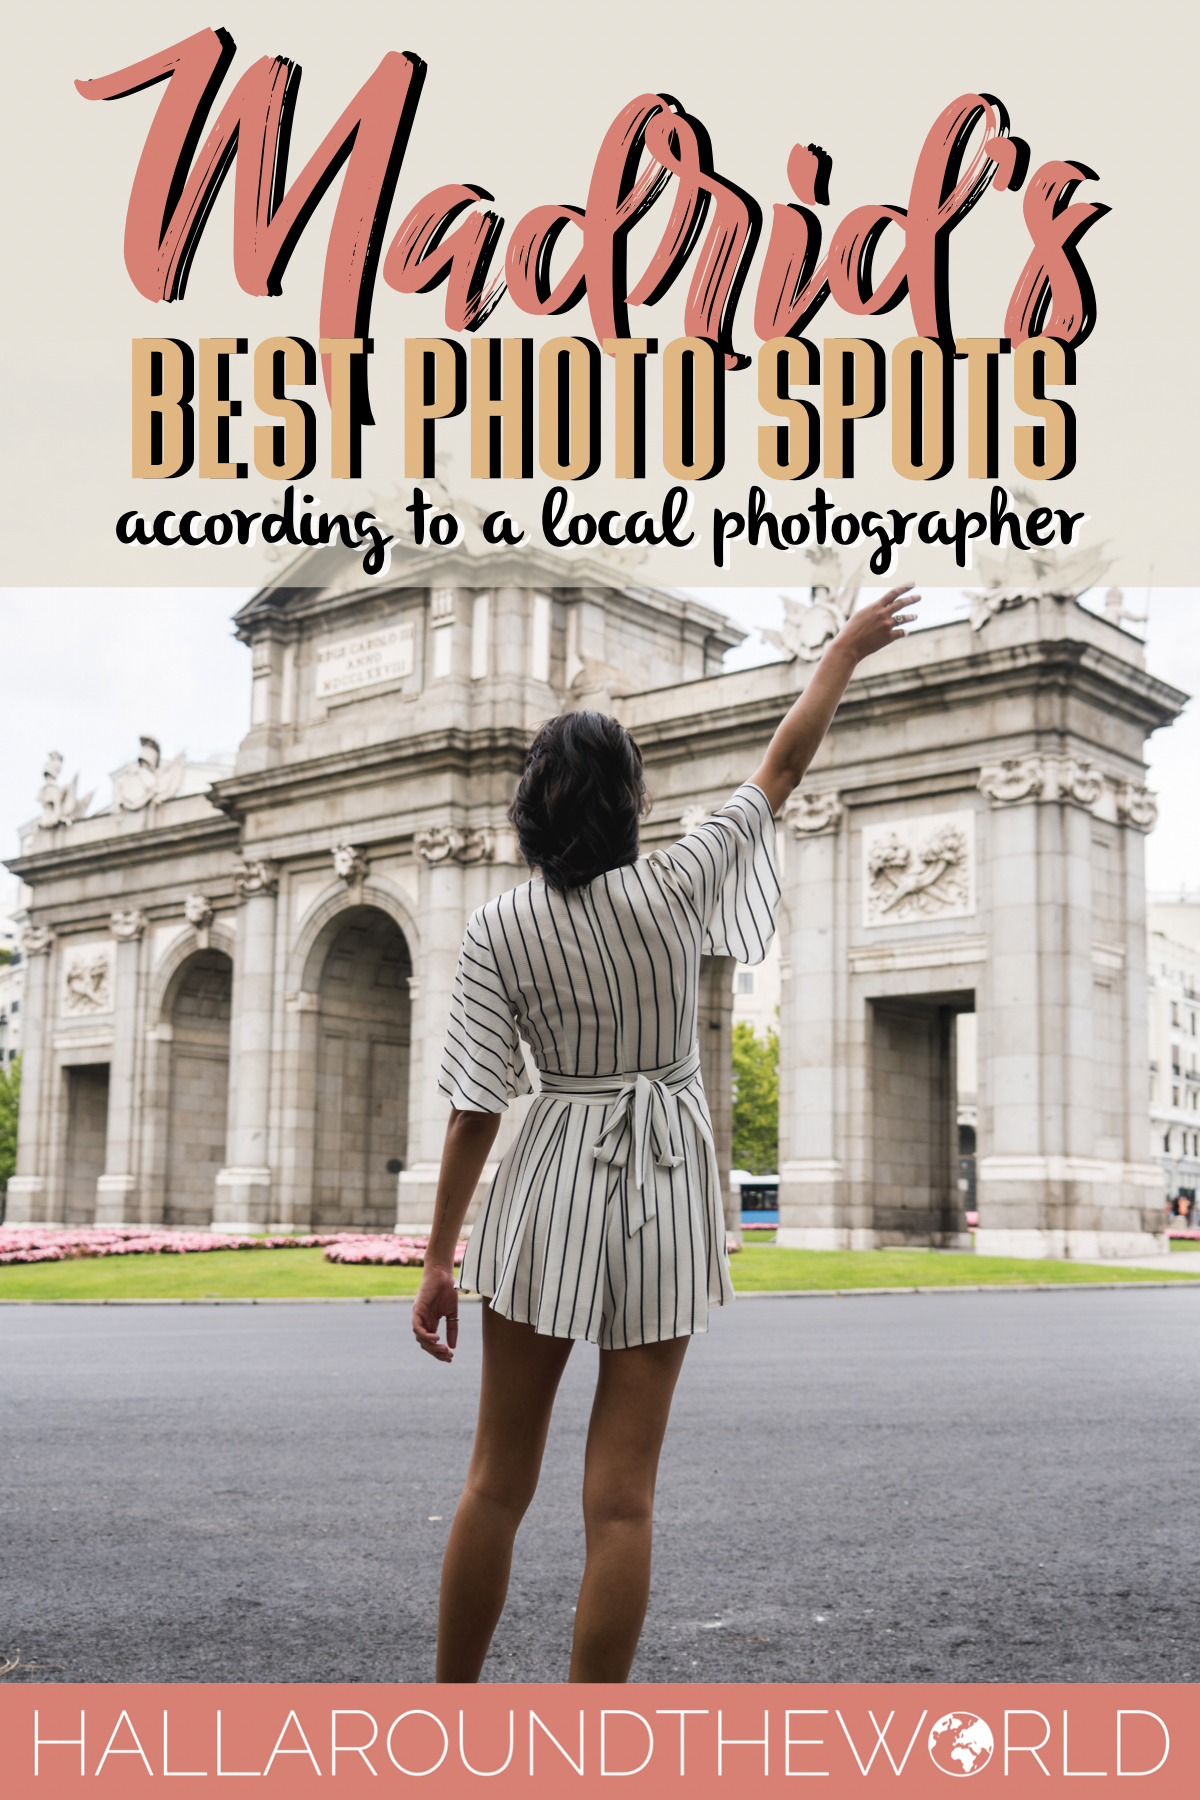 Touring Madrid's Best Photo Spots with Joel Potter Photography | HallAroundtheWorld